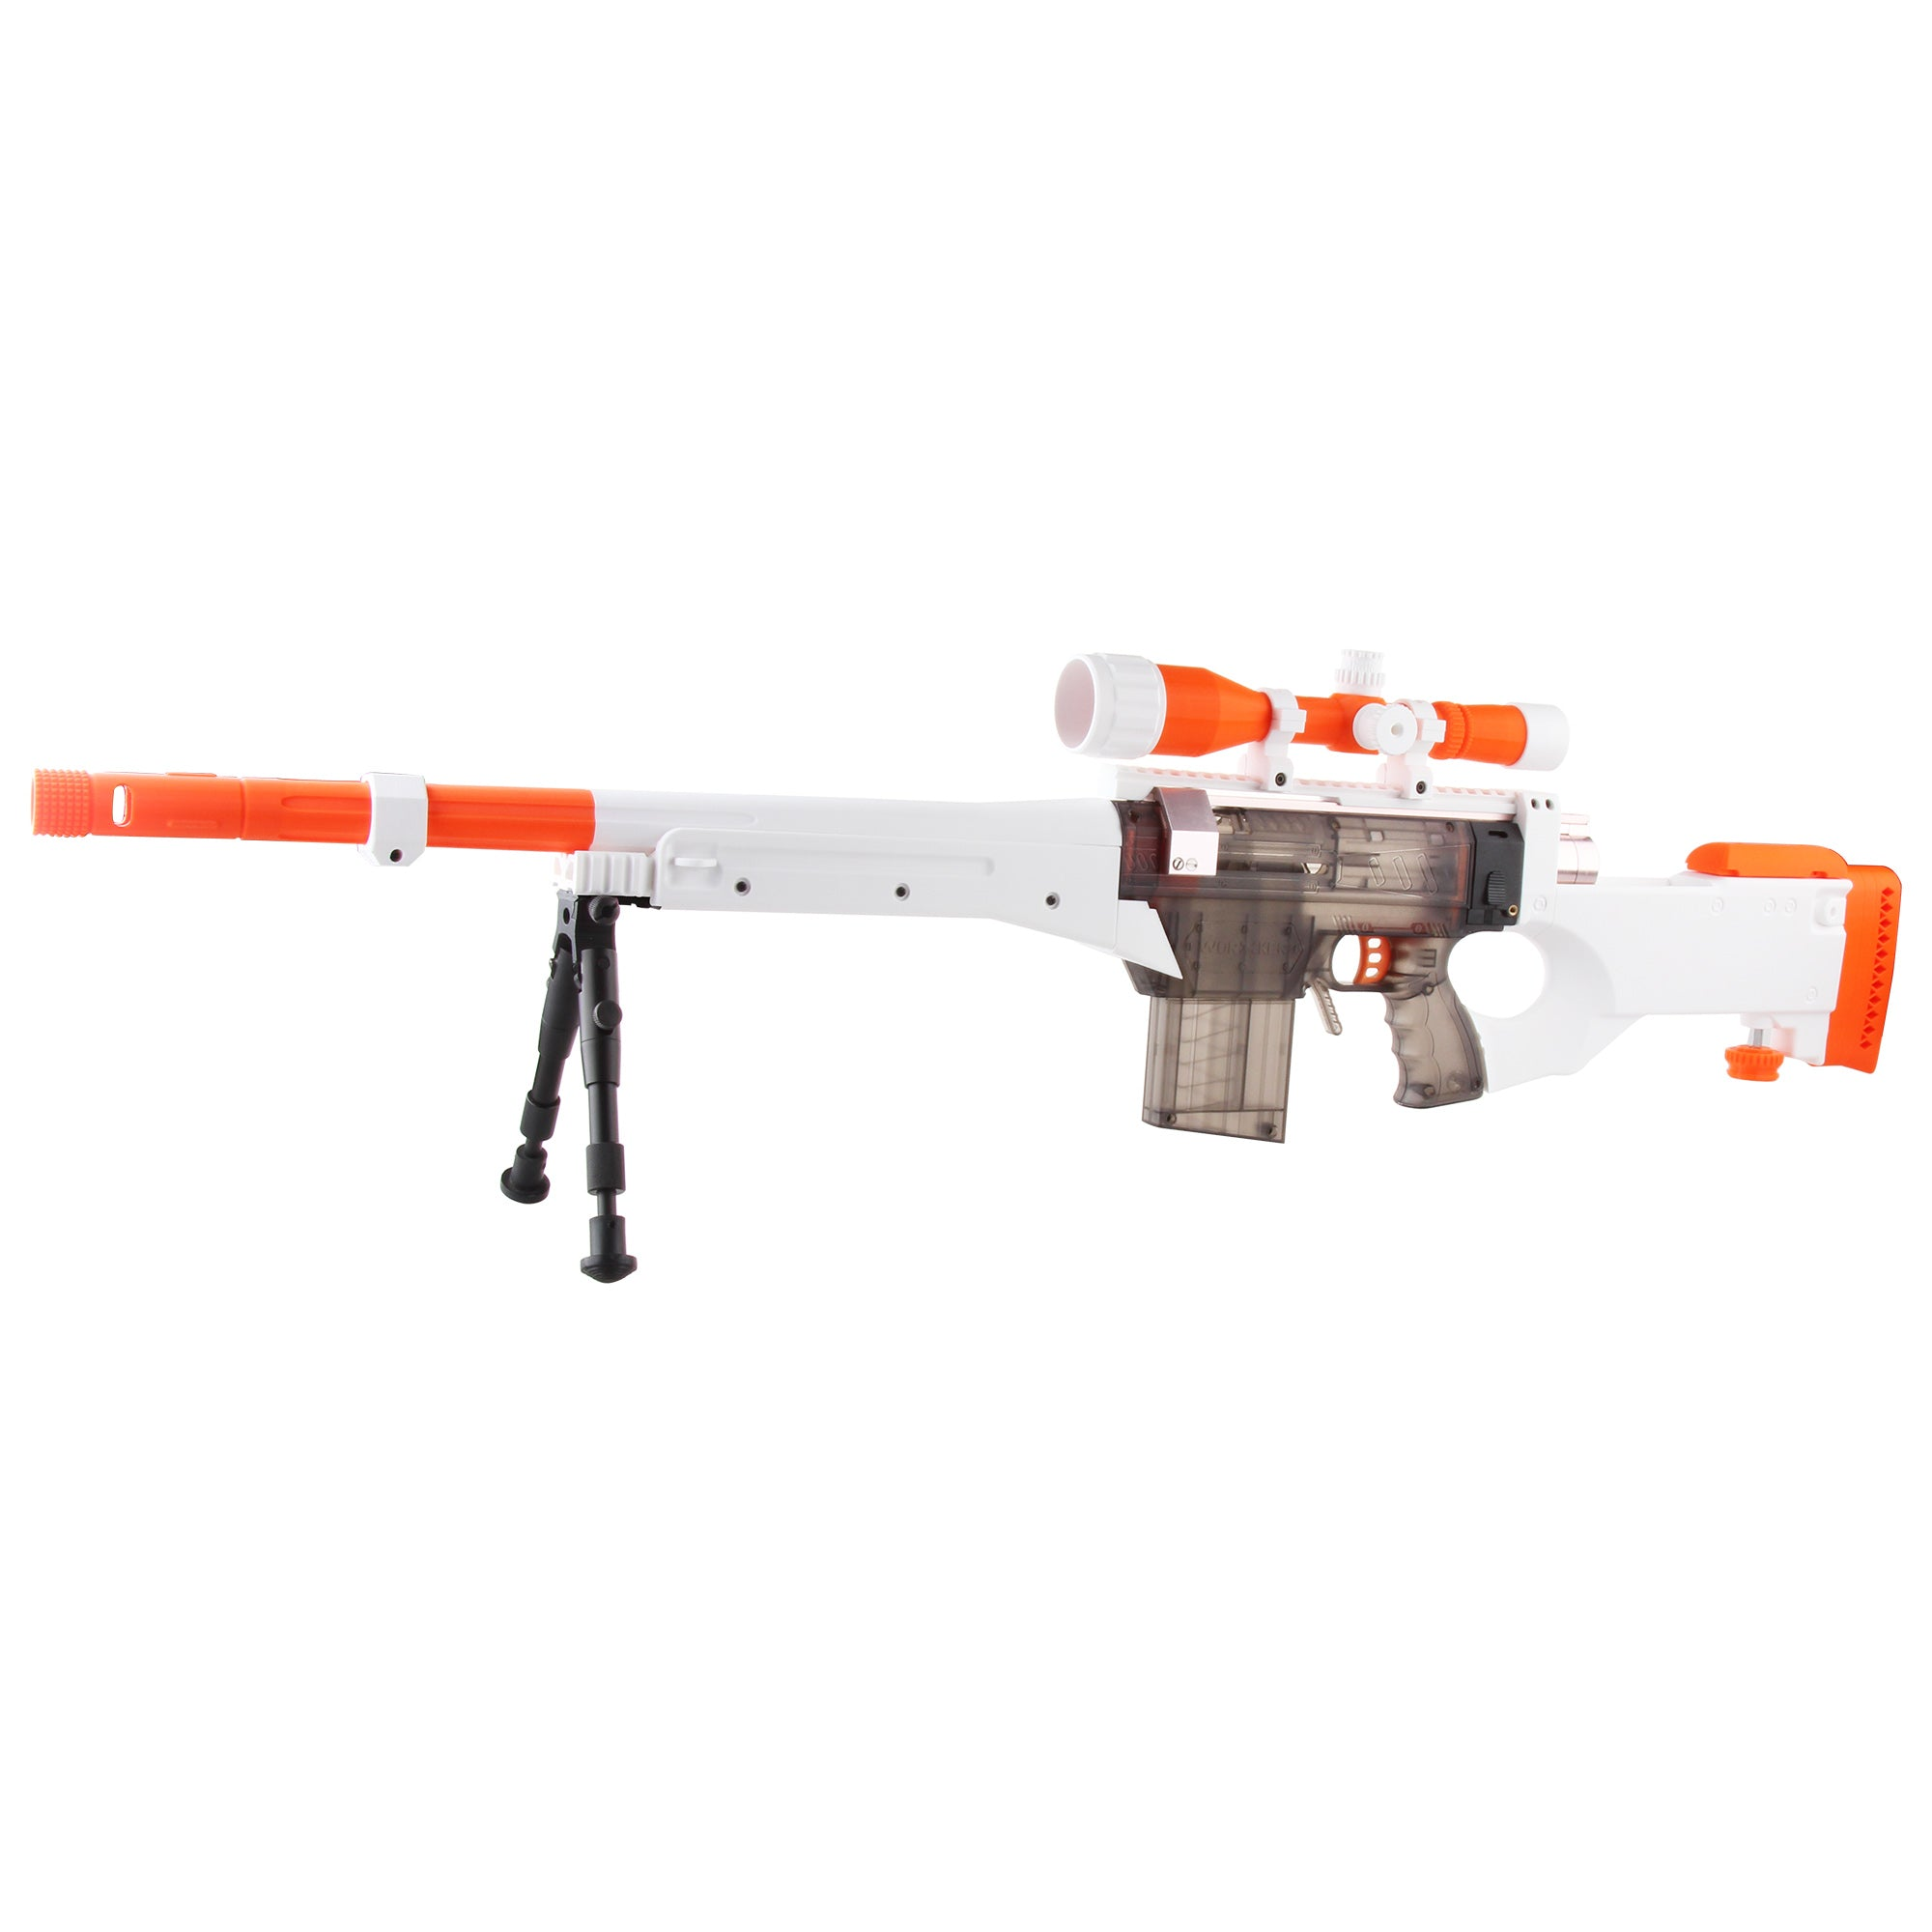 JGCWorker Prophecy-R Series L96 AWP Foam Play Toy Blaster - Nerf Mod Kits -Worker Mod Kits